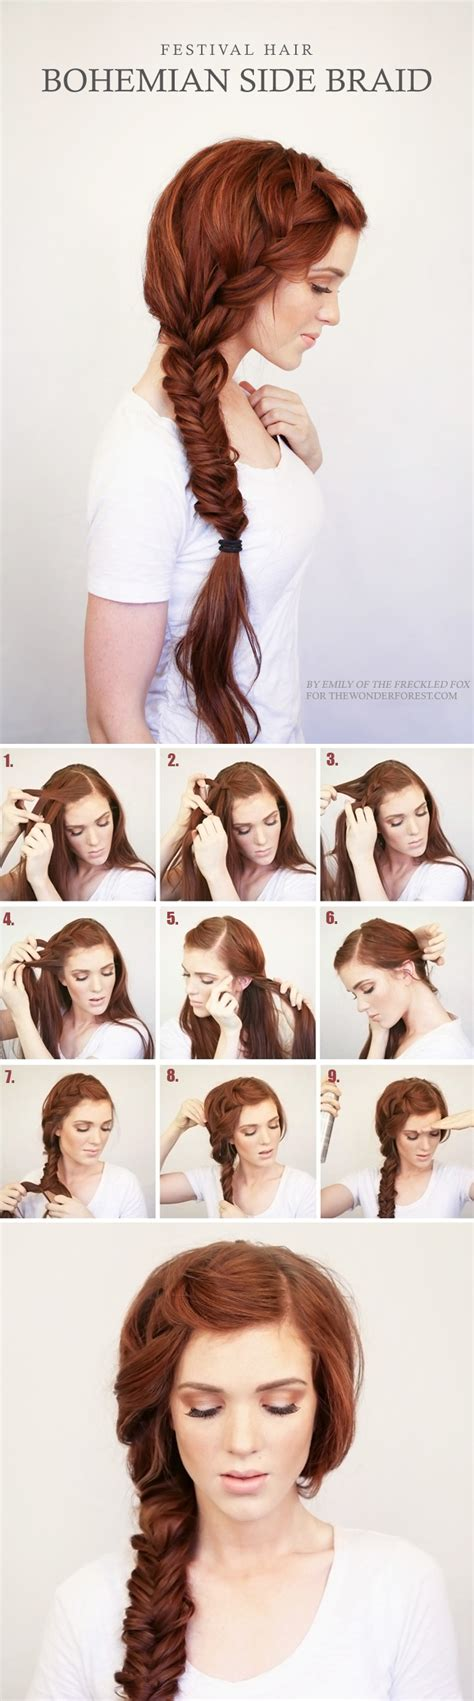 easiest type of diy hair braiding 10 best diy wedding hairstyles with tutorials tulle